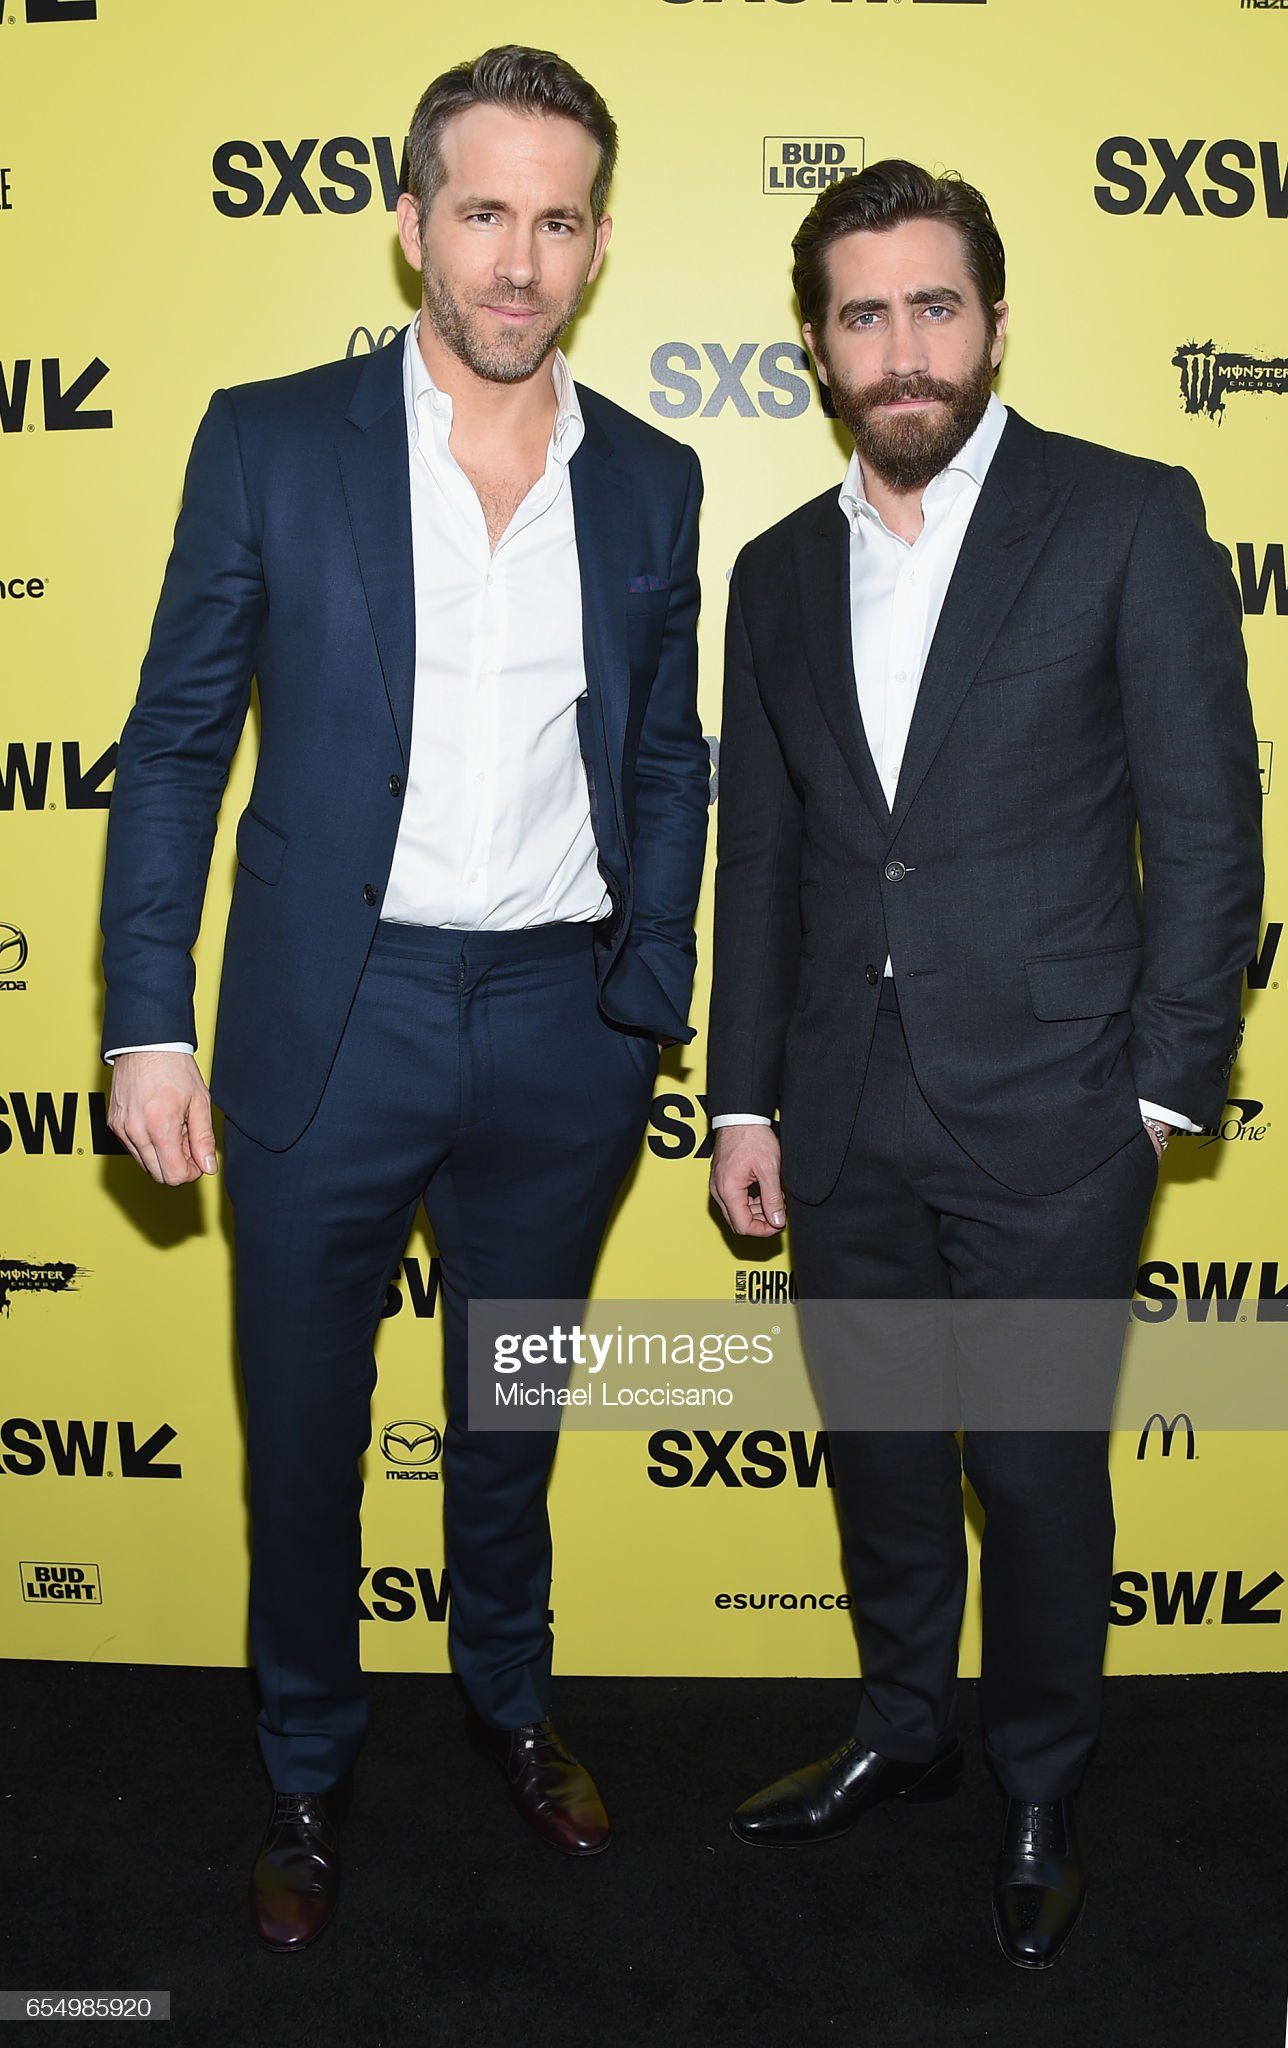 ¿Cuánto mide Jake Gyllenhaal?  - Real height - Página 3 Actors-ryan-reynolds-and-jake-gyllenhaal-attend-the-life-premiere-picture-id654985920?s=2048x2048